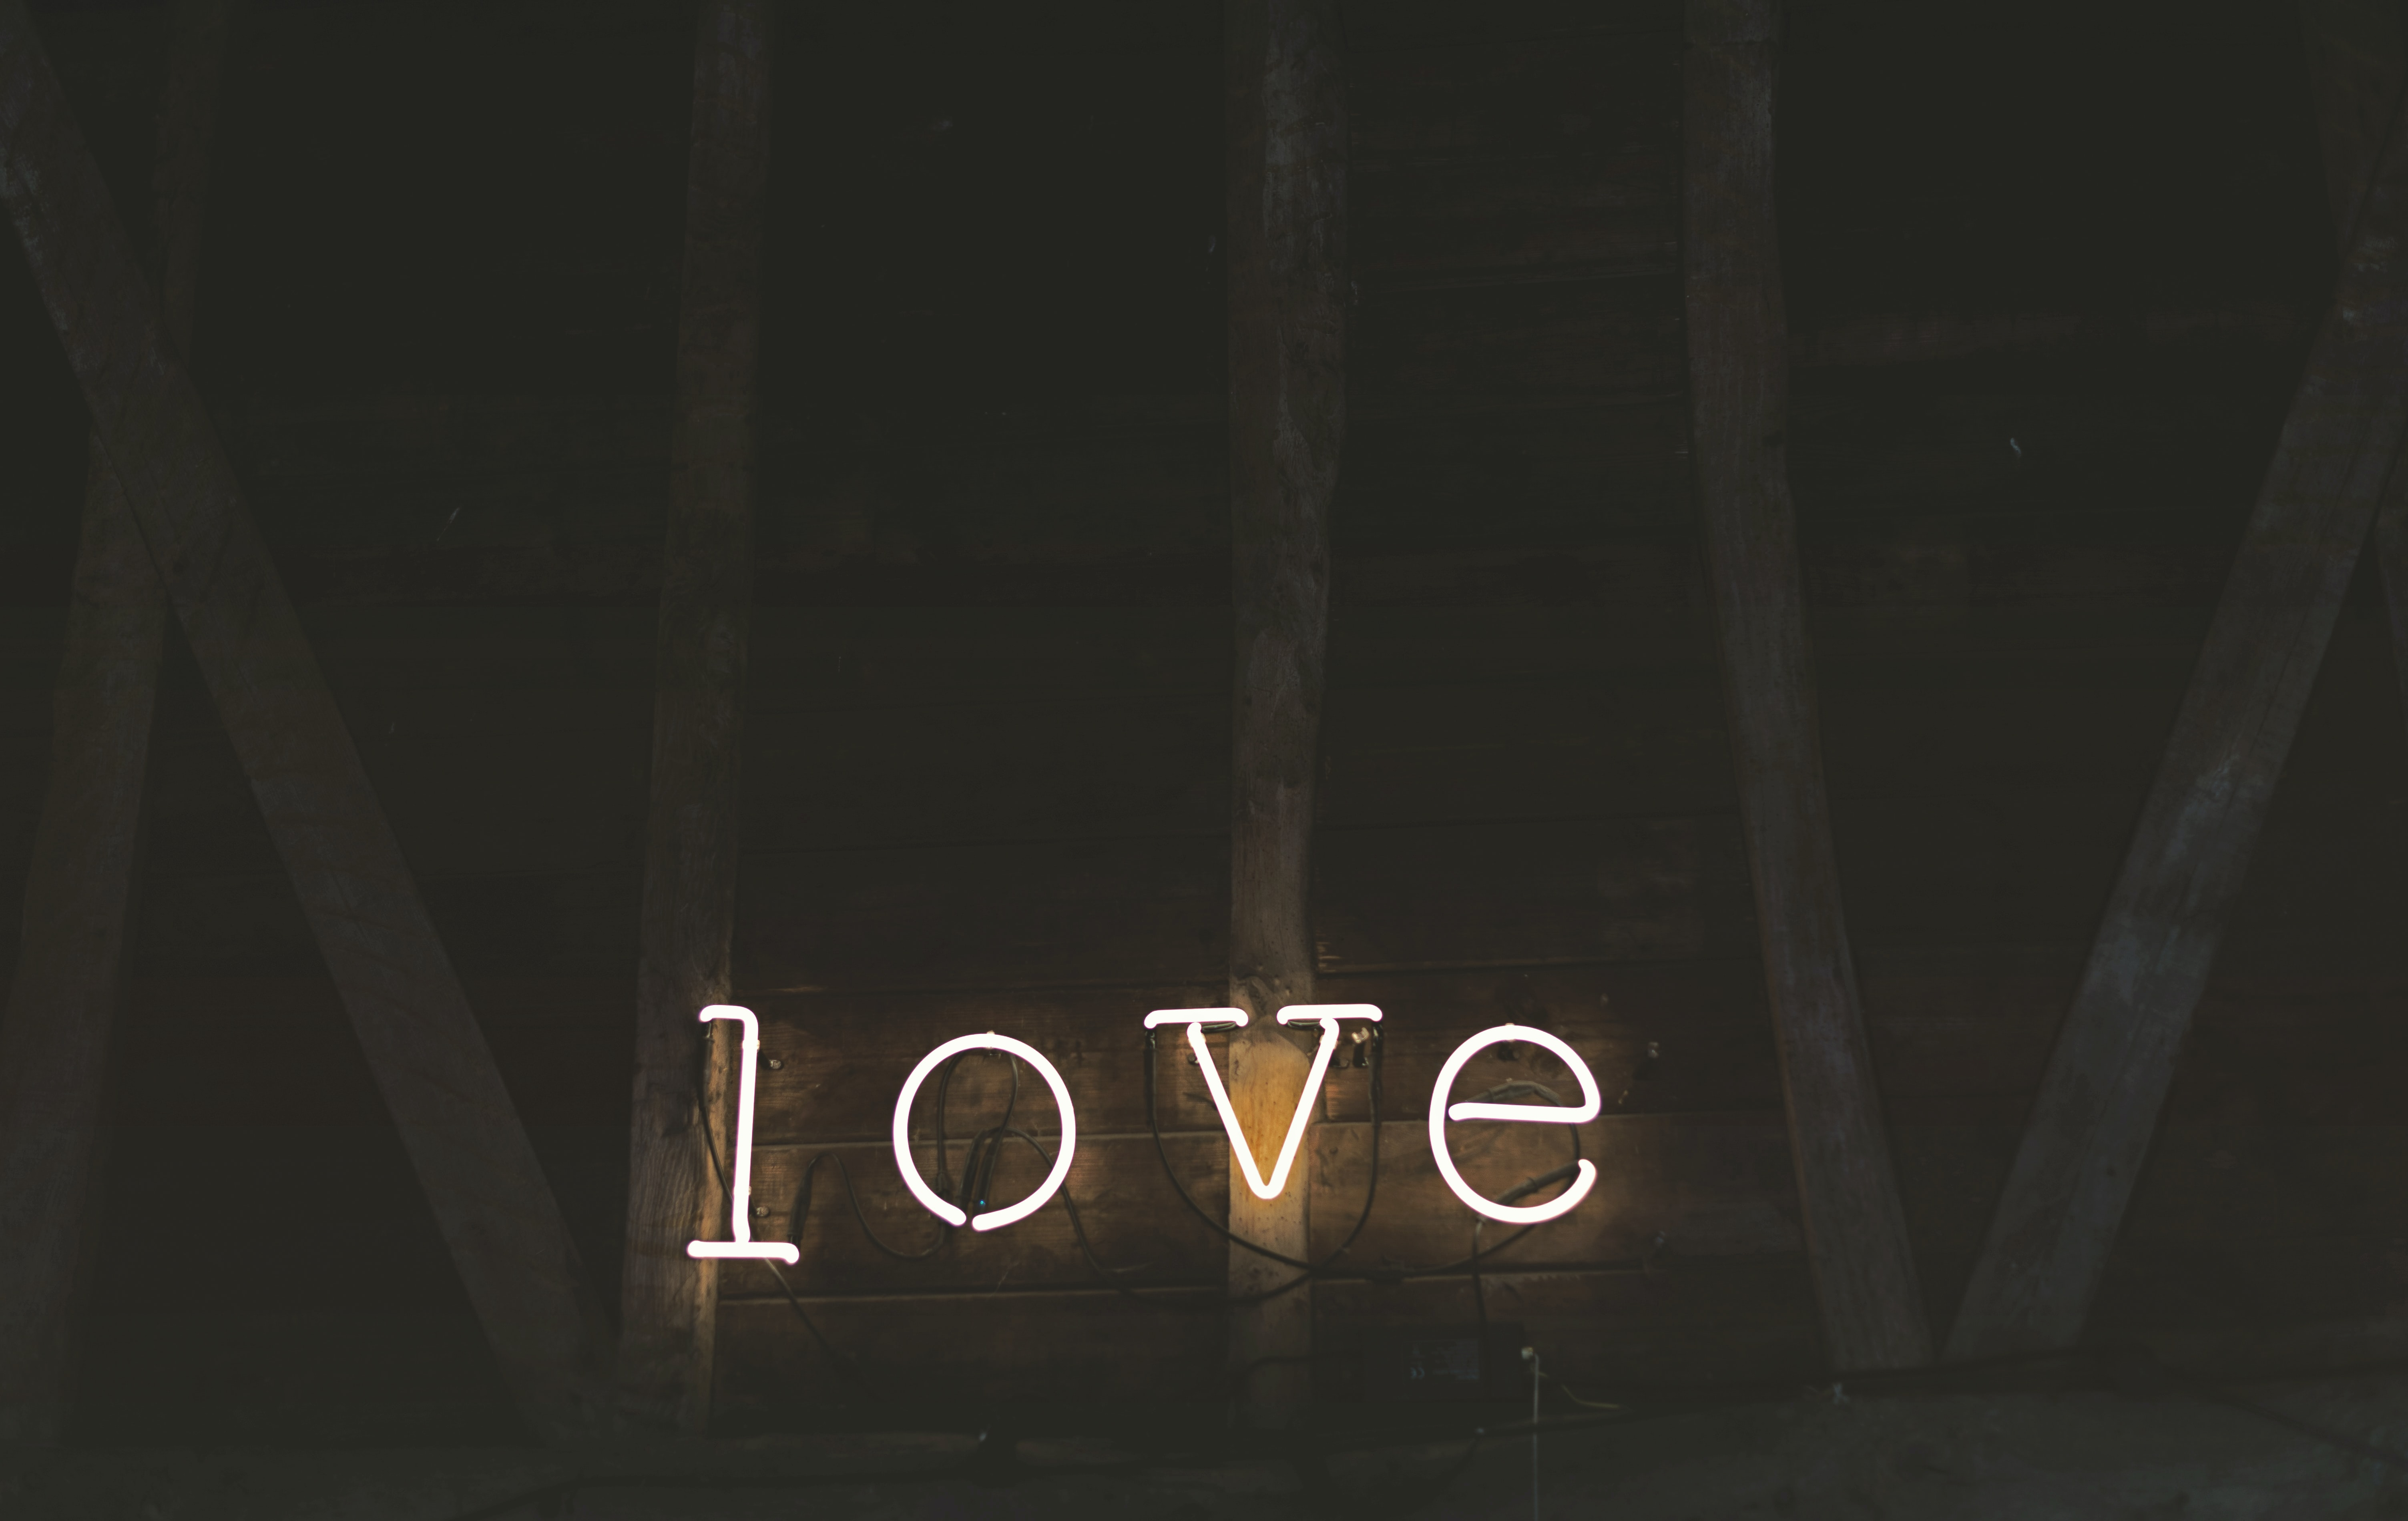 Neon lights spell out love against a wooden barn wall